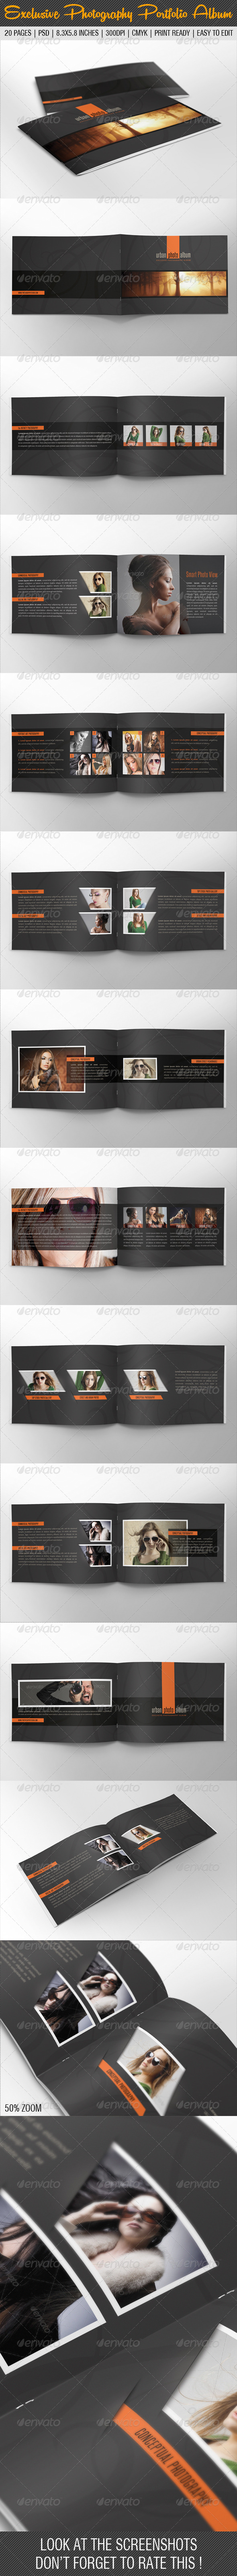 Exclusive Photography Portfolio Album 05 - Photo Albums Print Templates